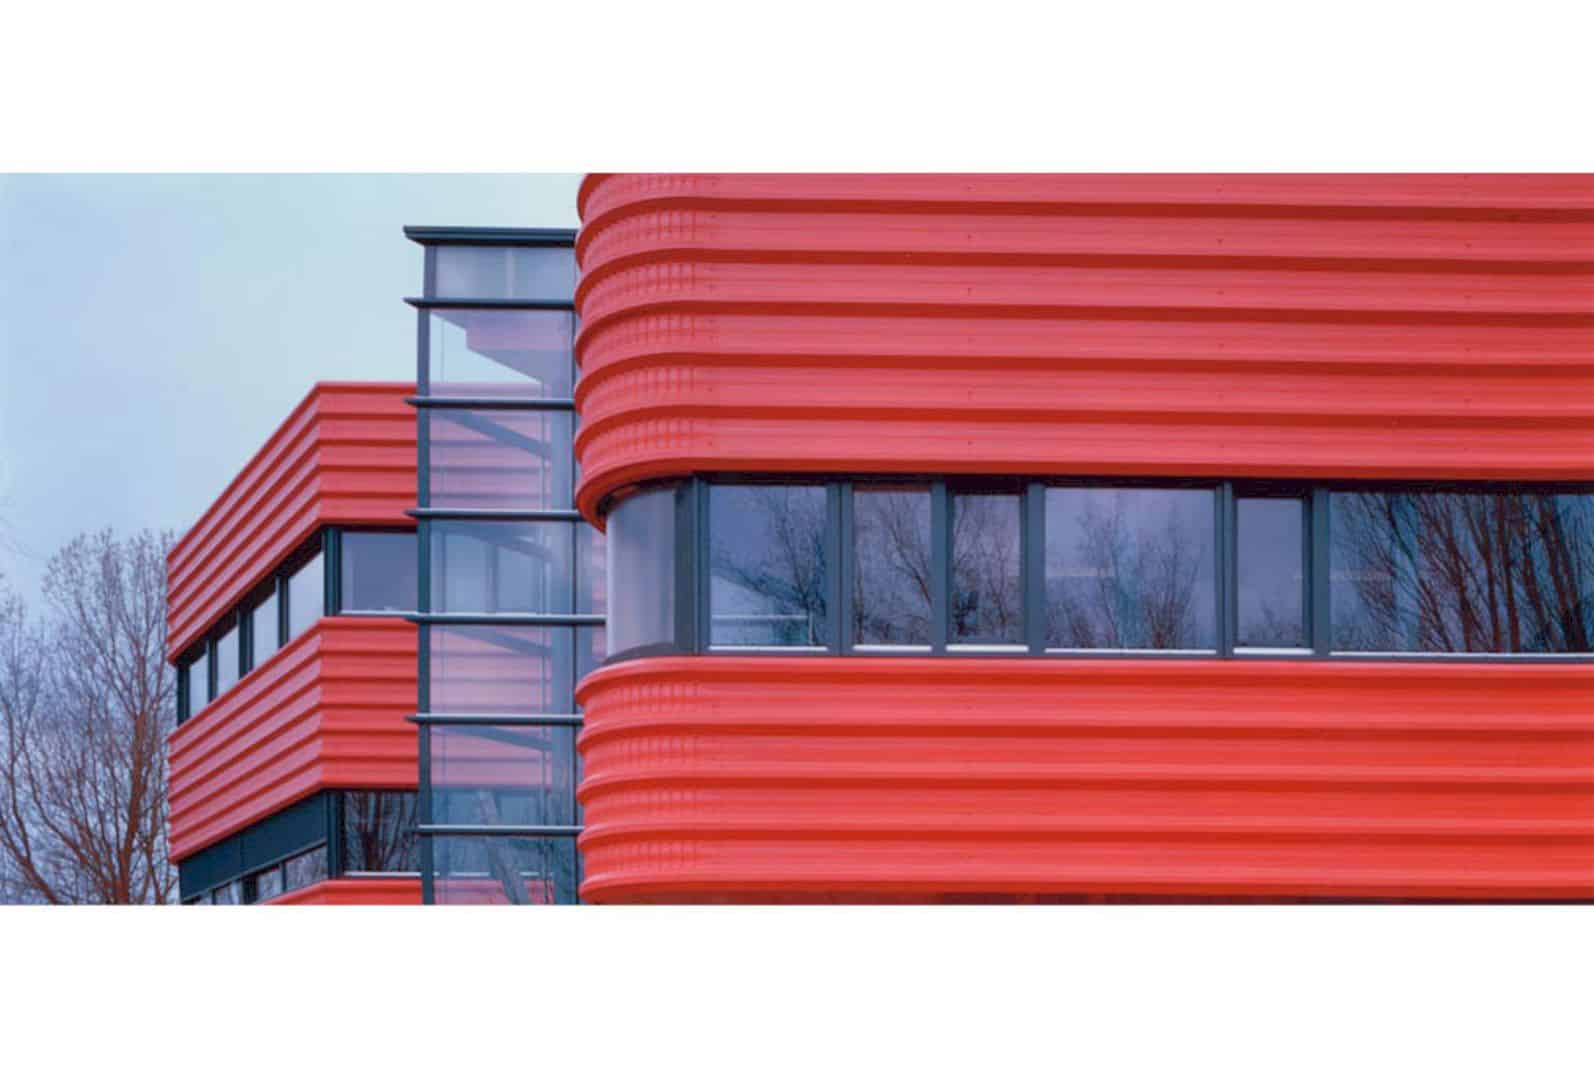 Fire Station Hoorn By Jeanne Dekkers Architectuur 3